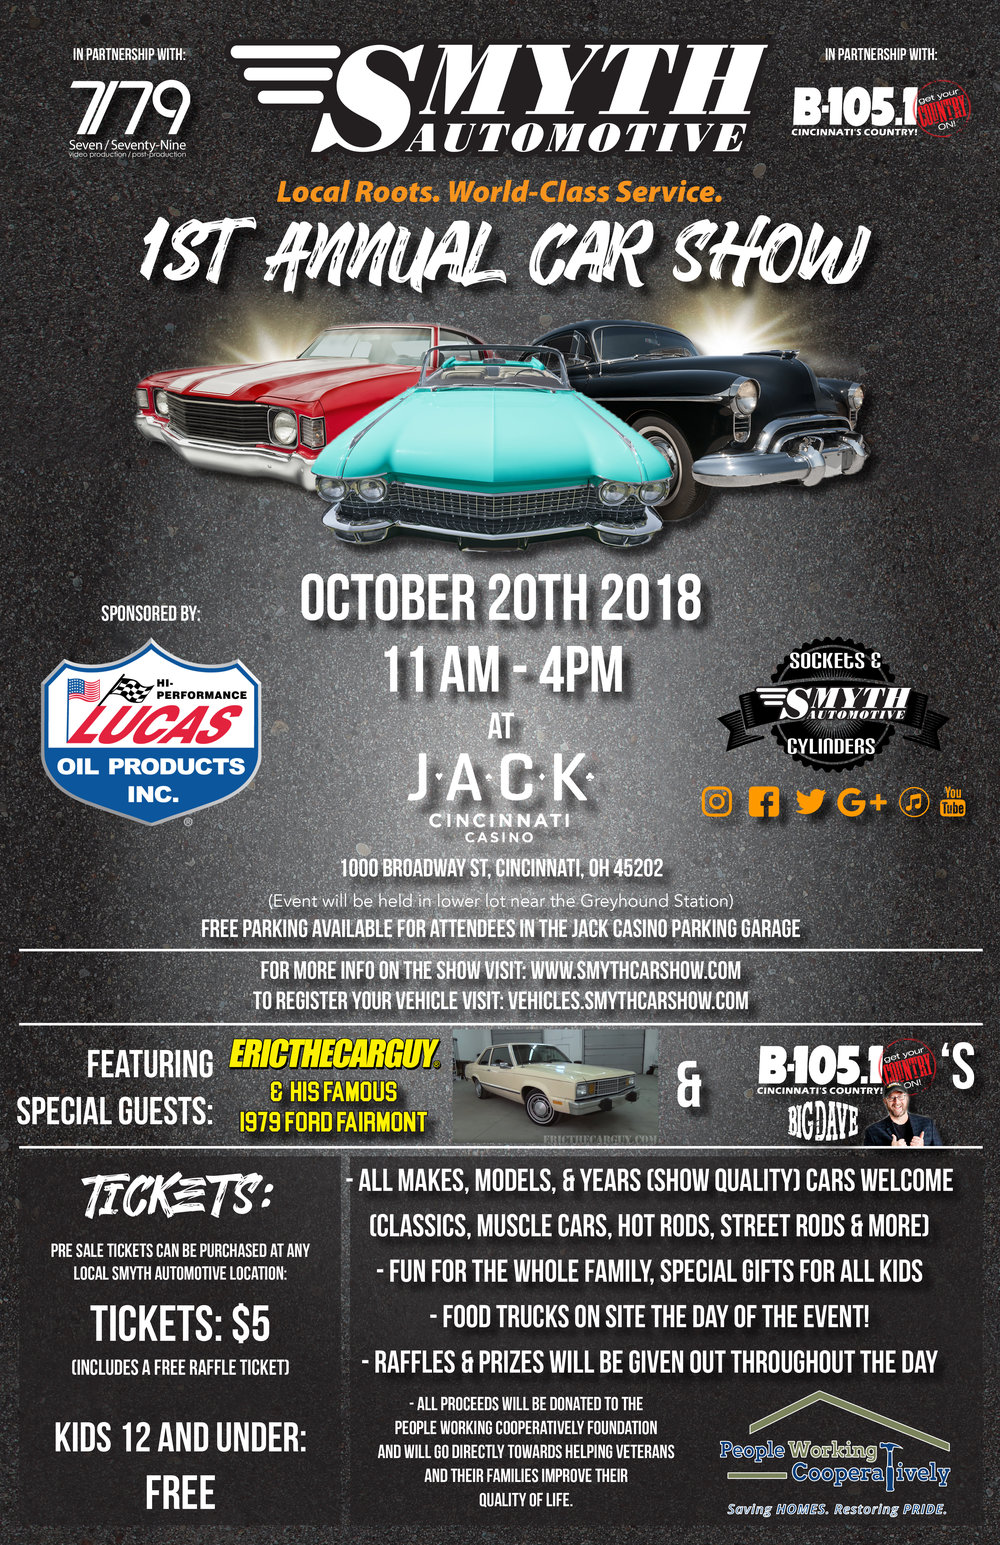 Register at  www.SmythCarShow.com